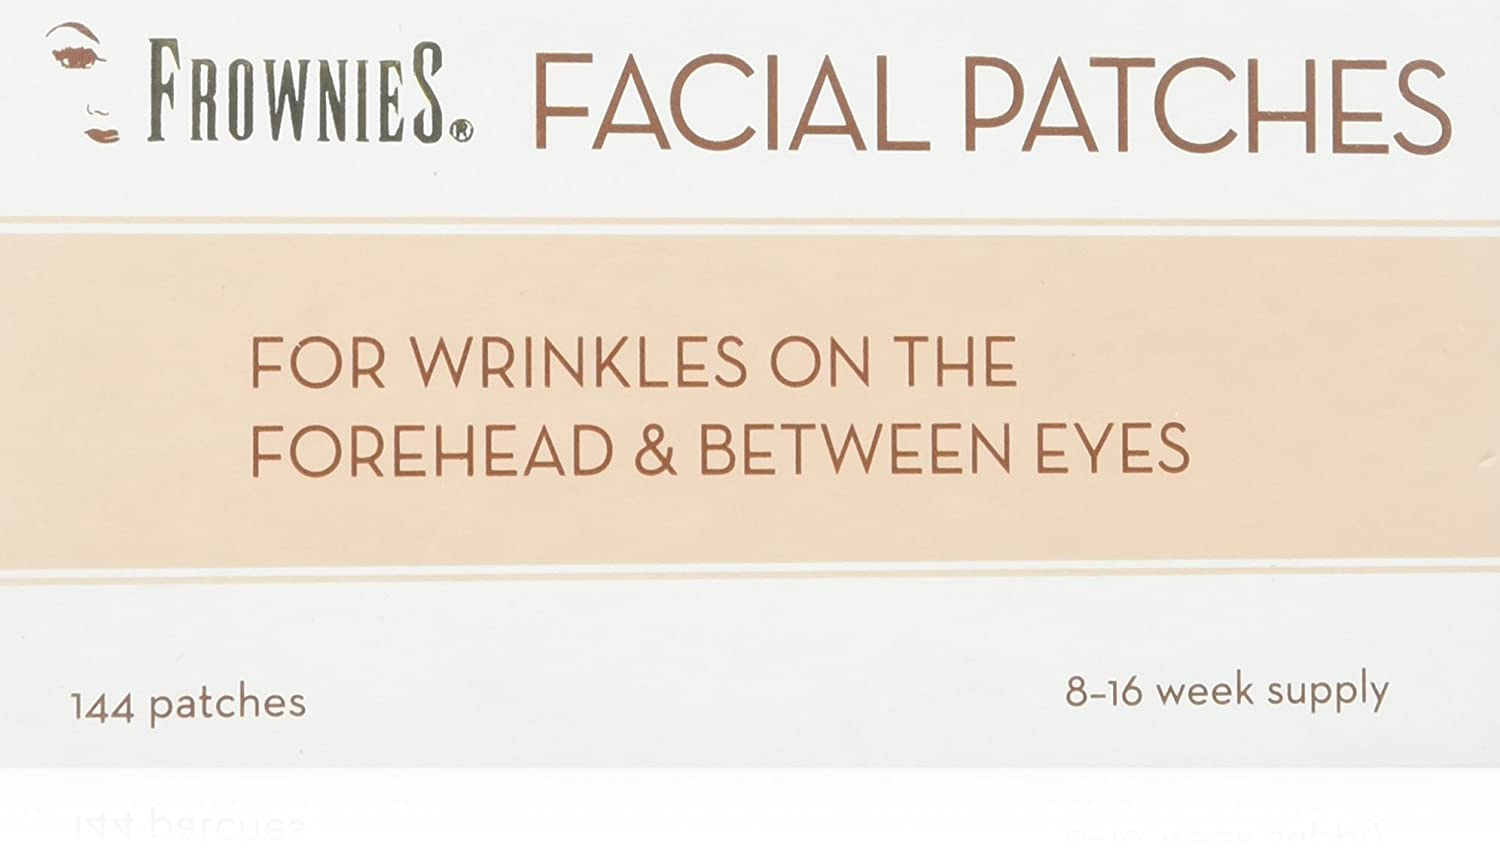 Frownies (FBE) Forehead & Between Eyes, 144 Patches (3) pack FBE144